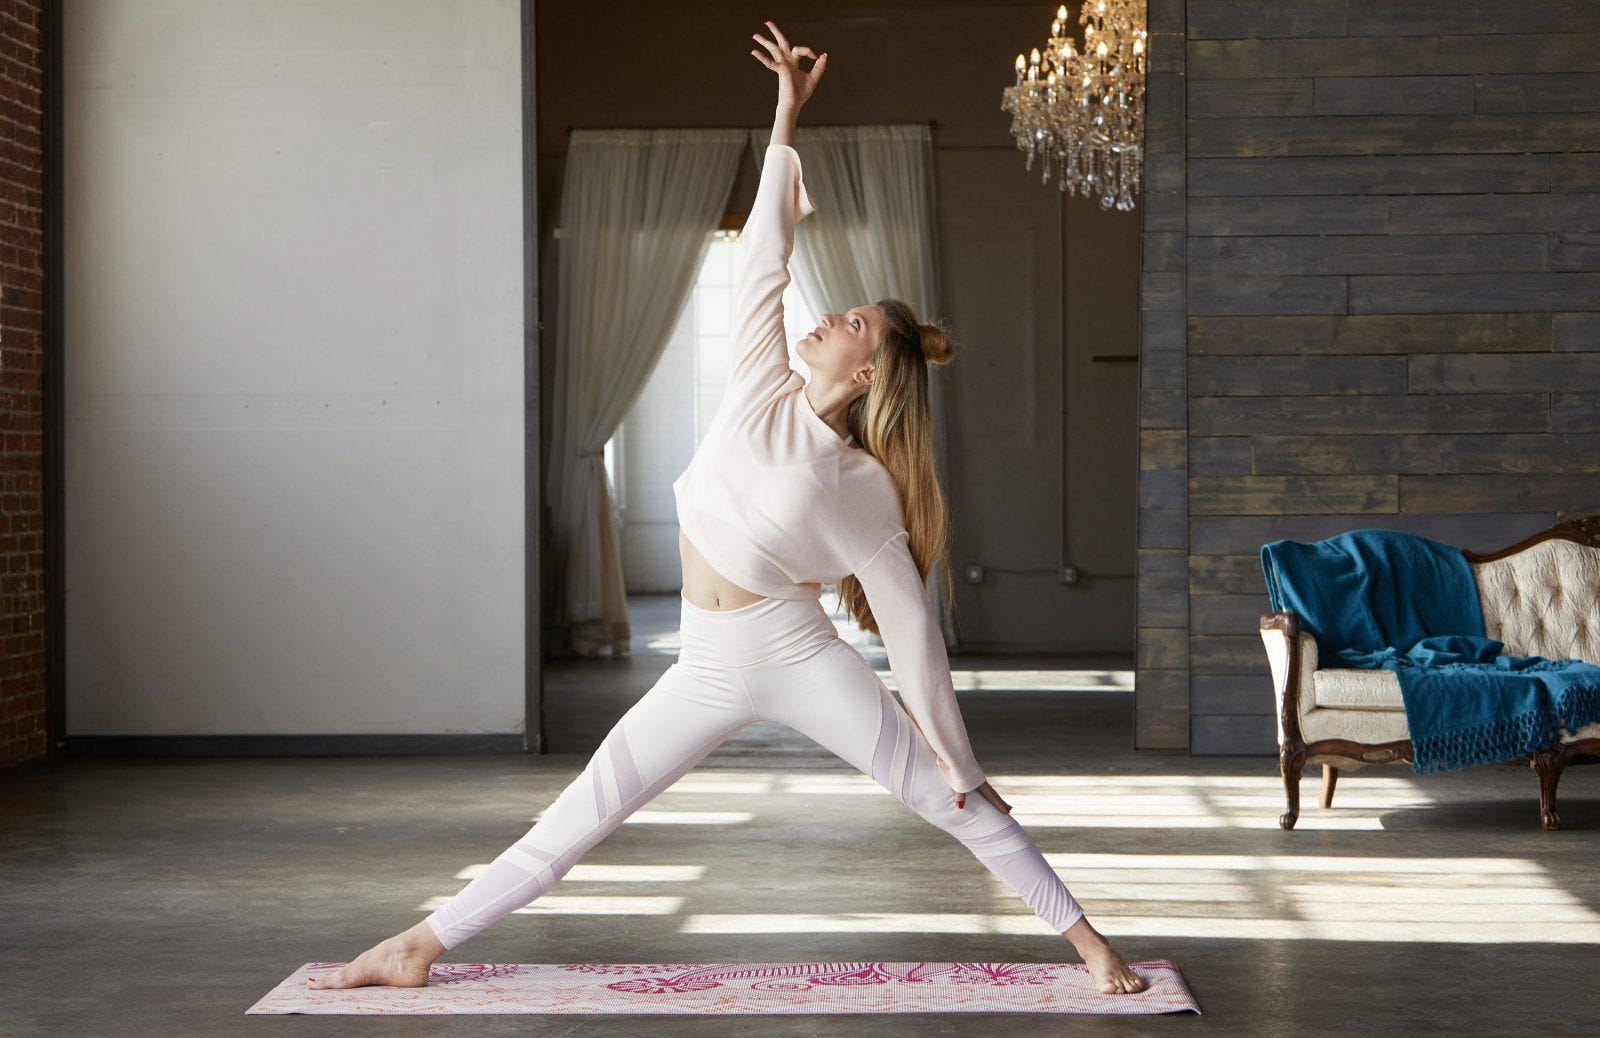 A woman doing a reverse triangle yoga pose in a studio.